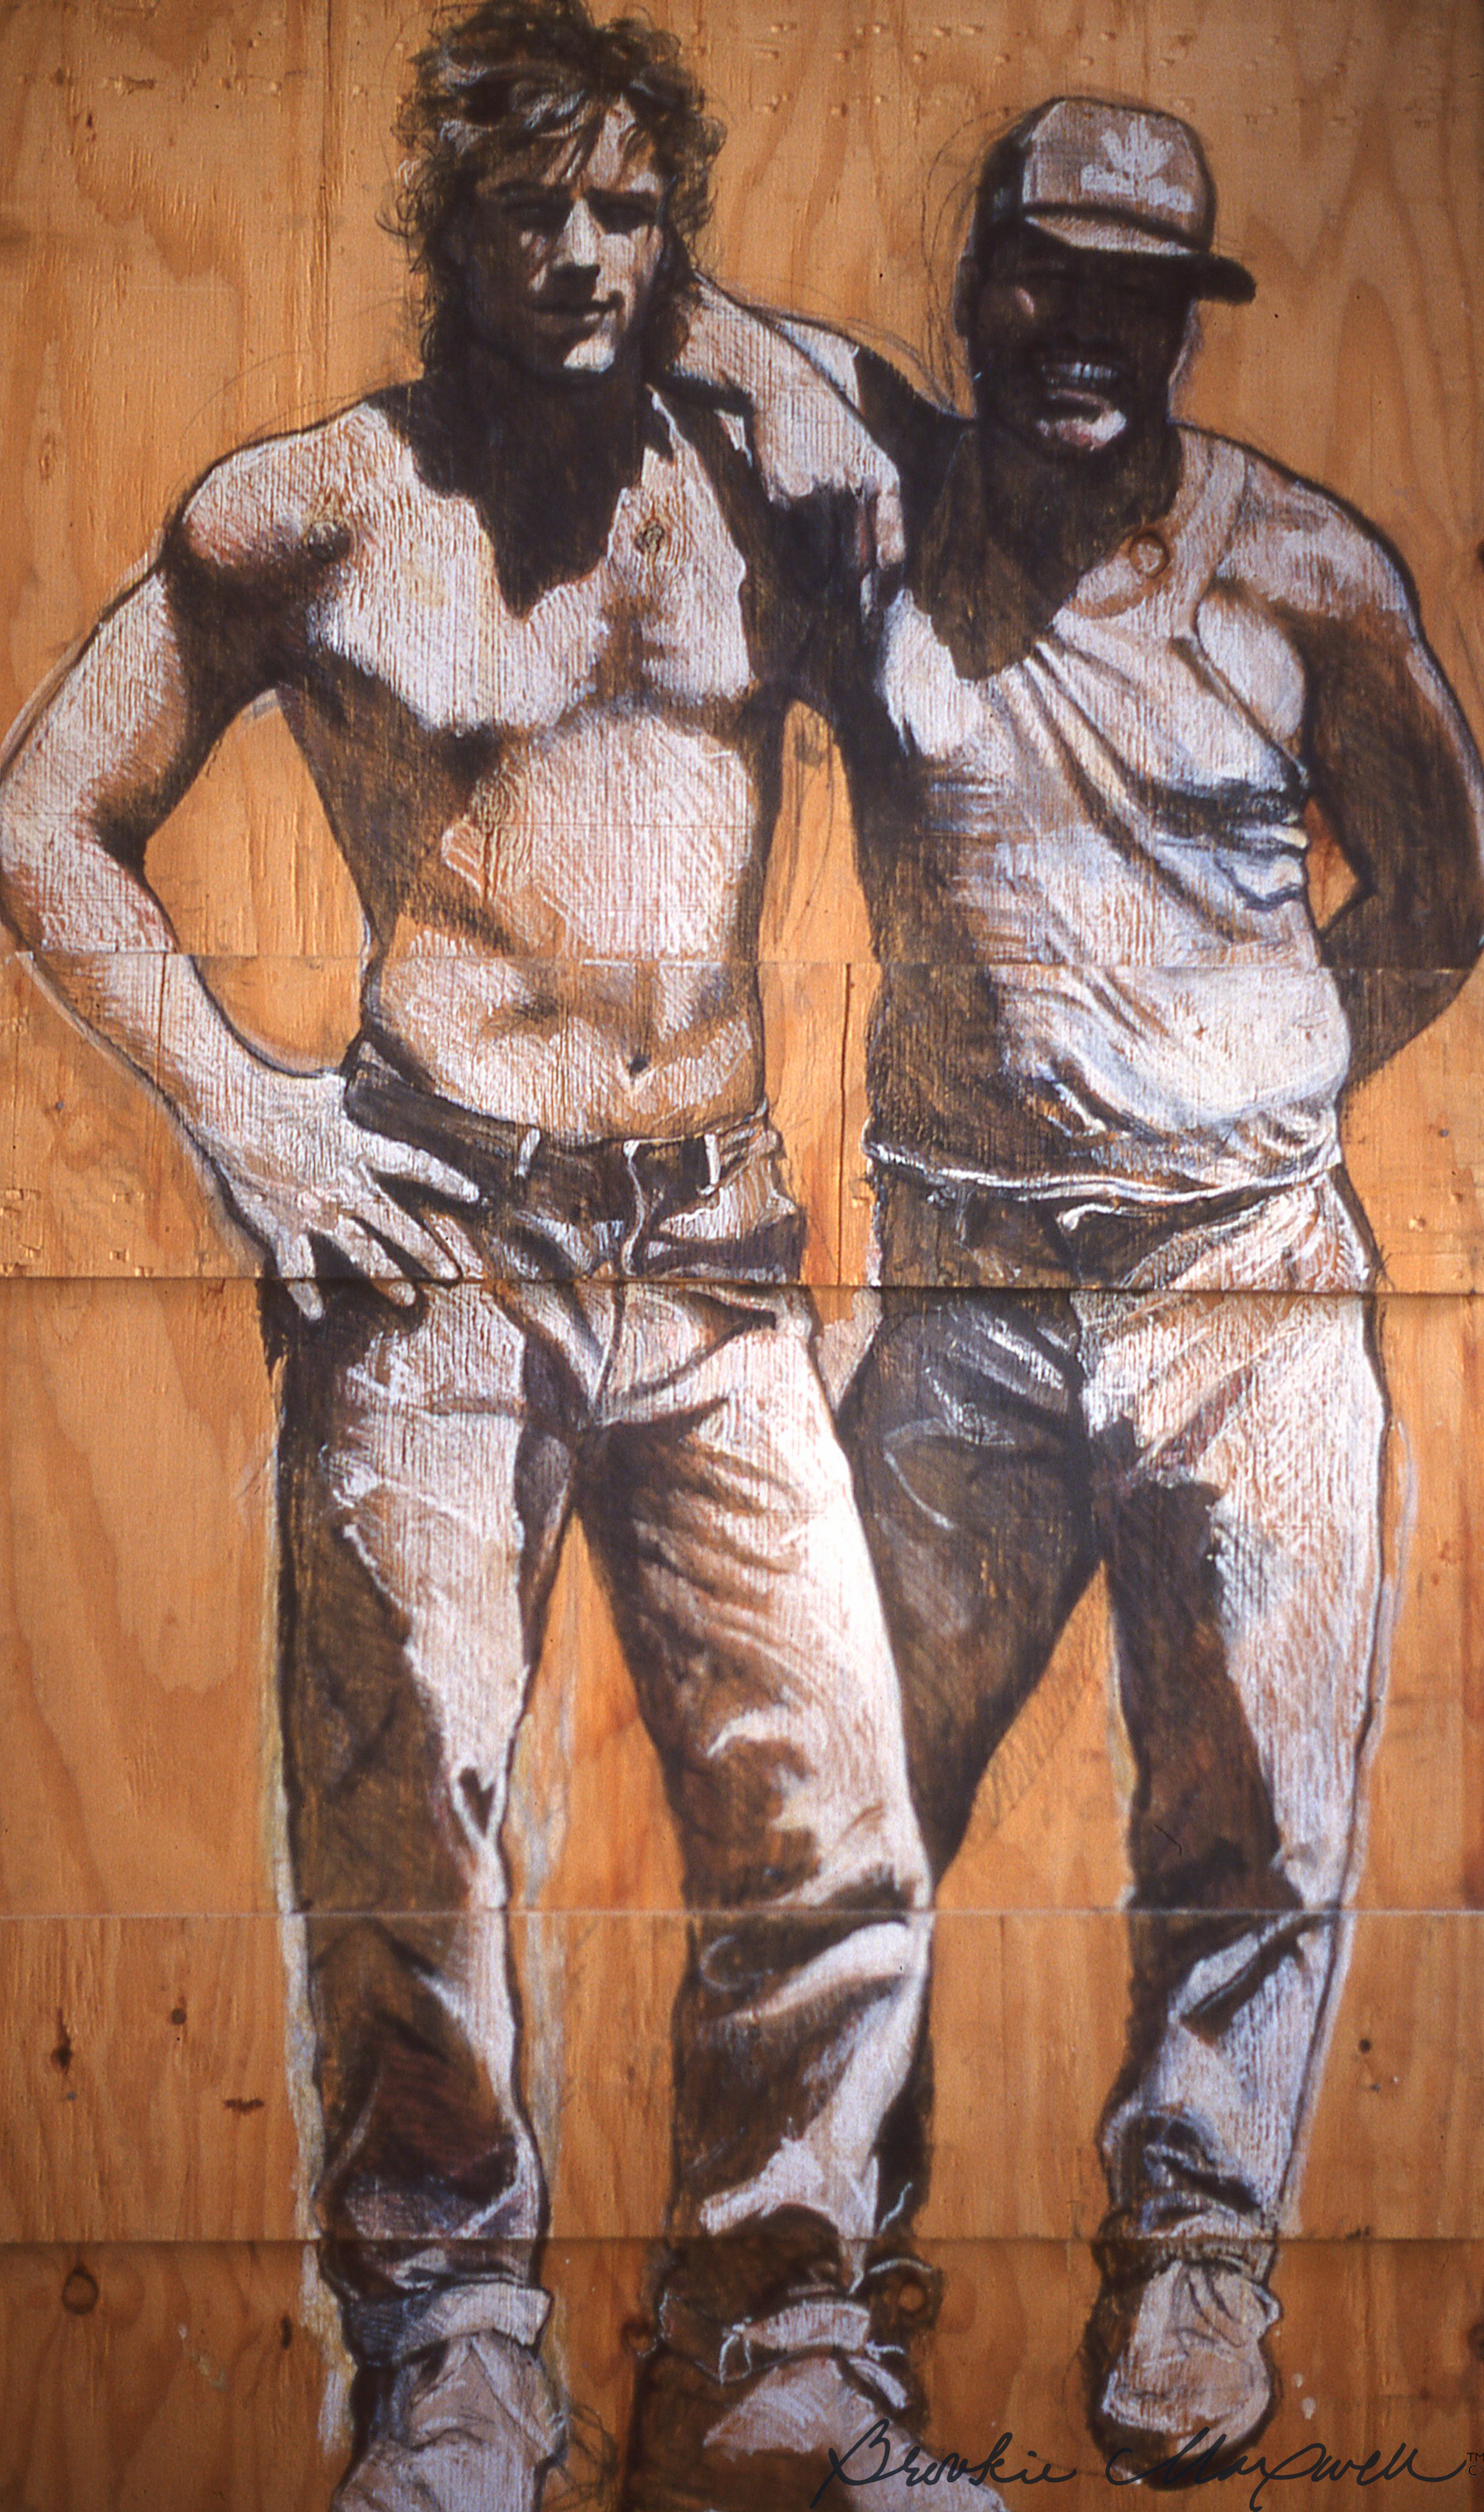 """Chico & Joe ,Caran d'ache crayon and watercolor on plywood,86 x 48"""", 1987-1990"""